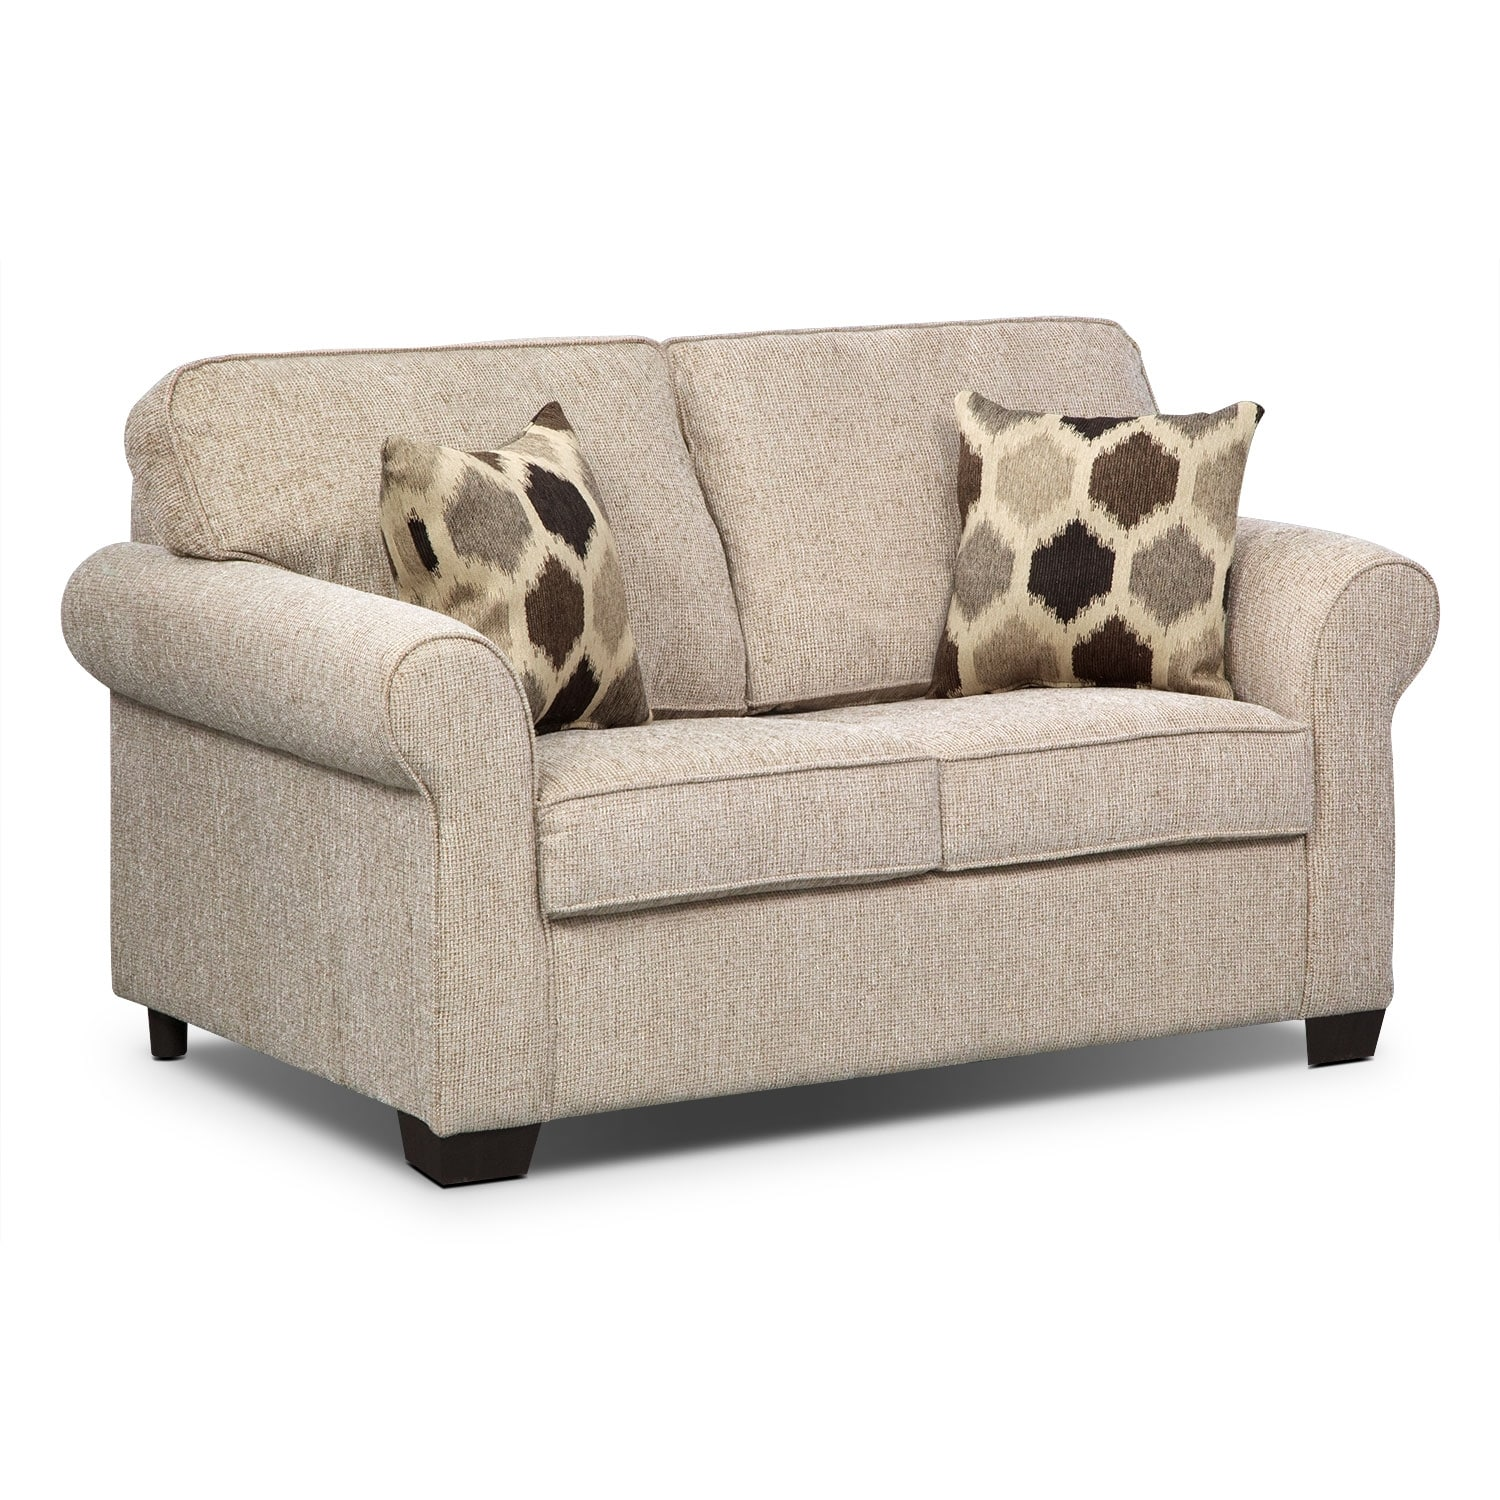 Living Room Furniture - Fletcher Twin Memory Foam Sleeper Sofa - Beige